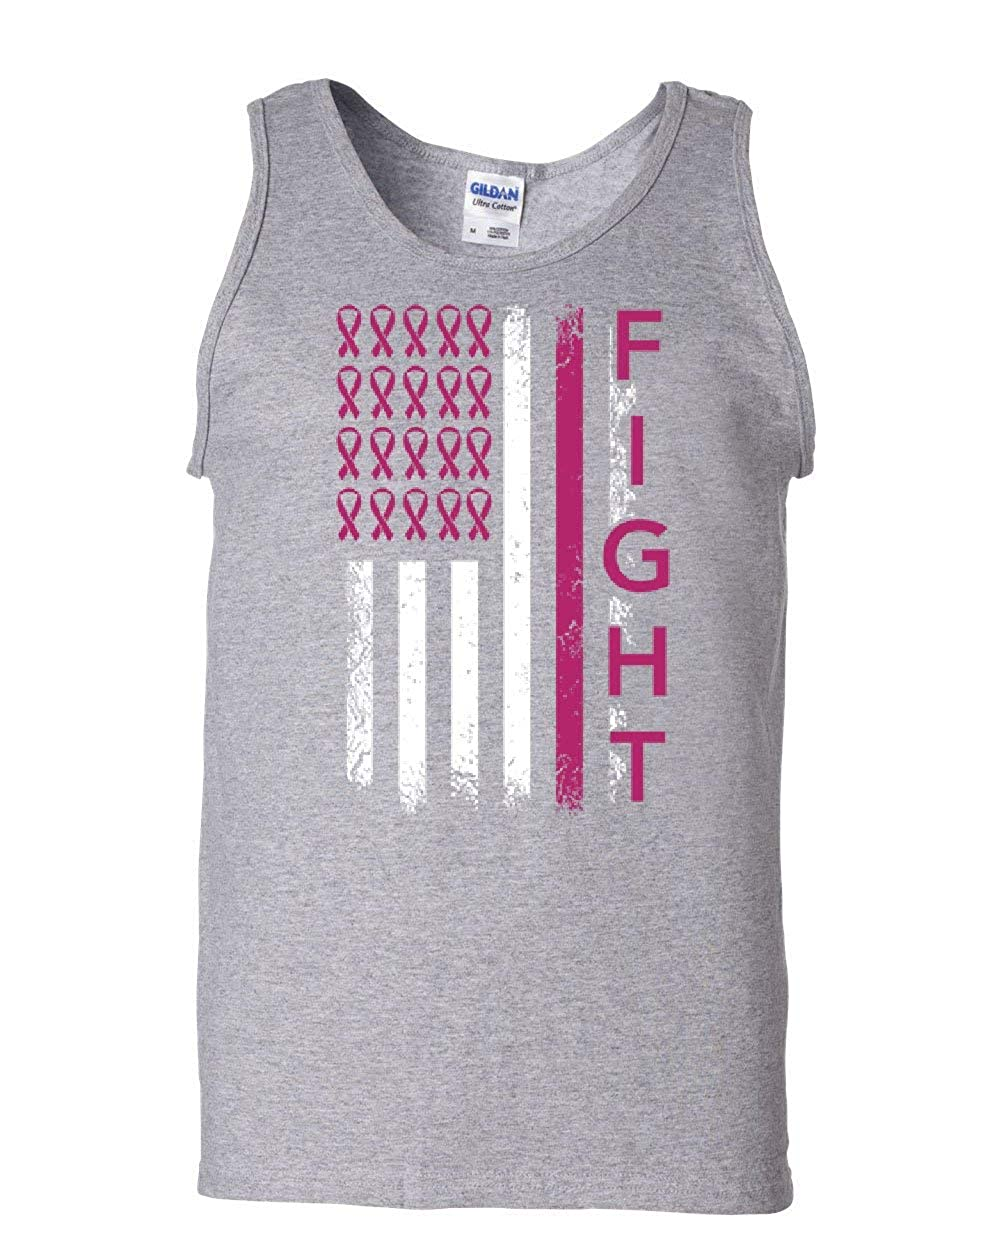 Tee Hunt Fight Breast Cancer American Flag Tank Top Awareness Pink Ribbon Sleeveless